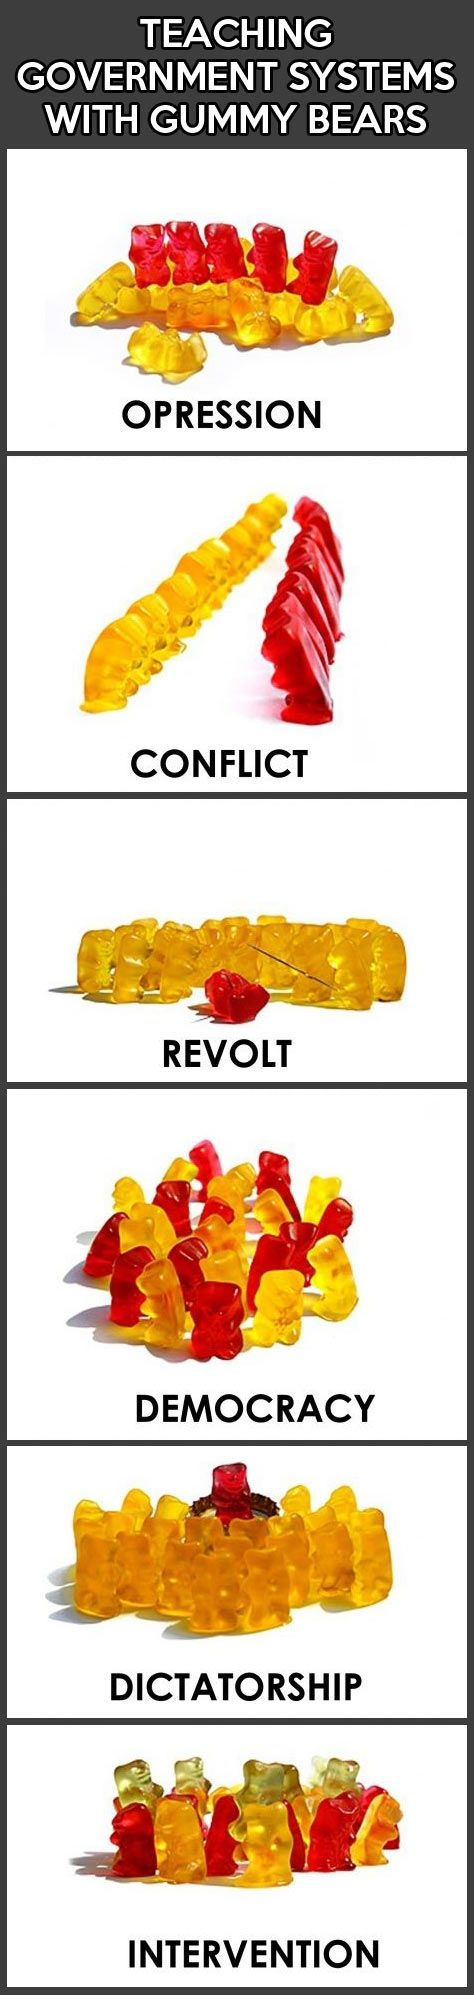 Teaching government with gummy bears.